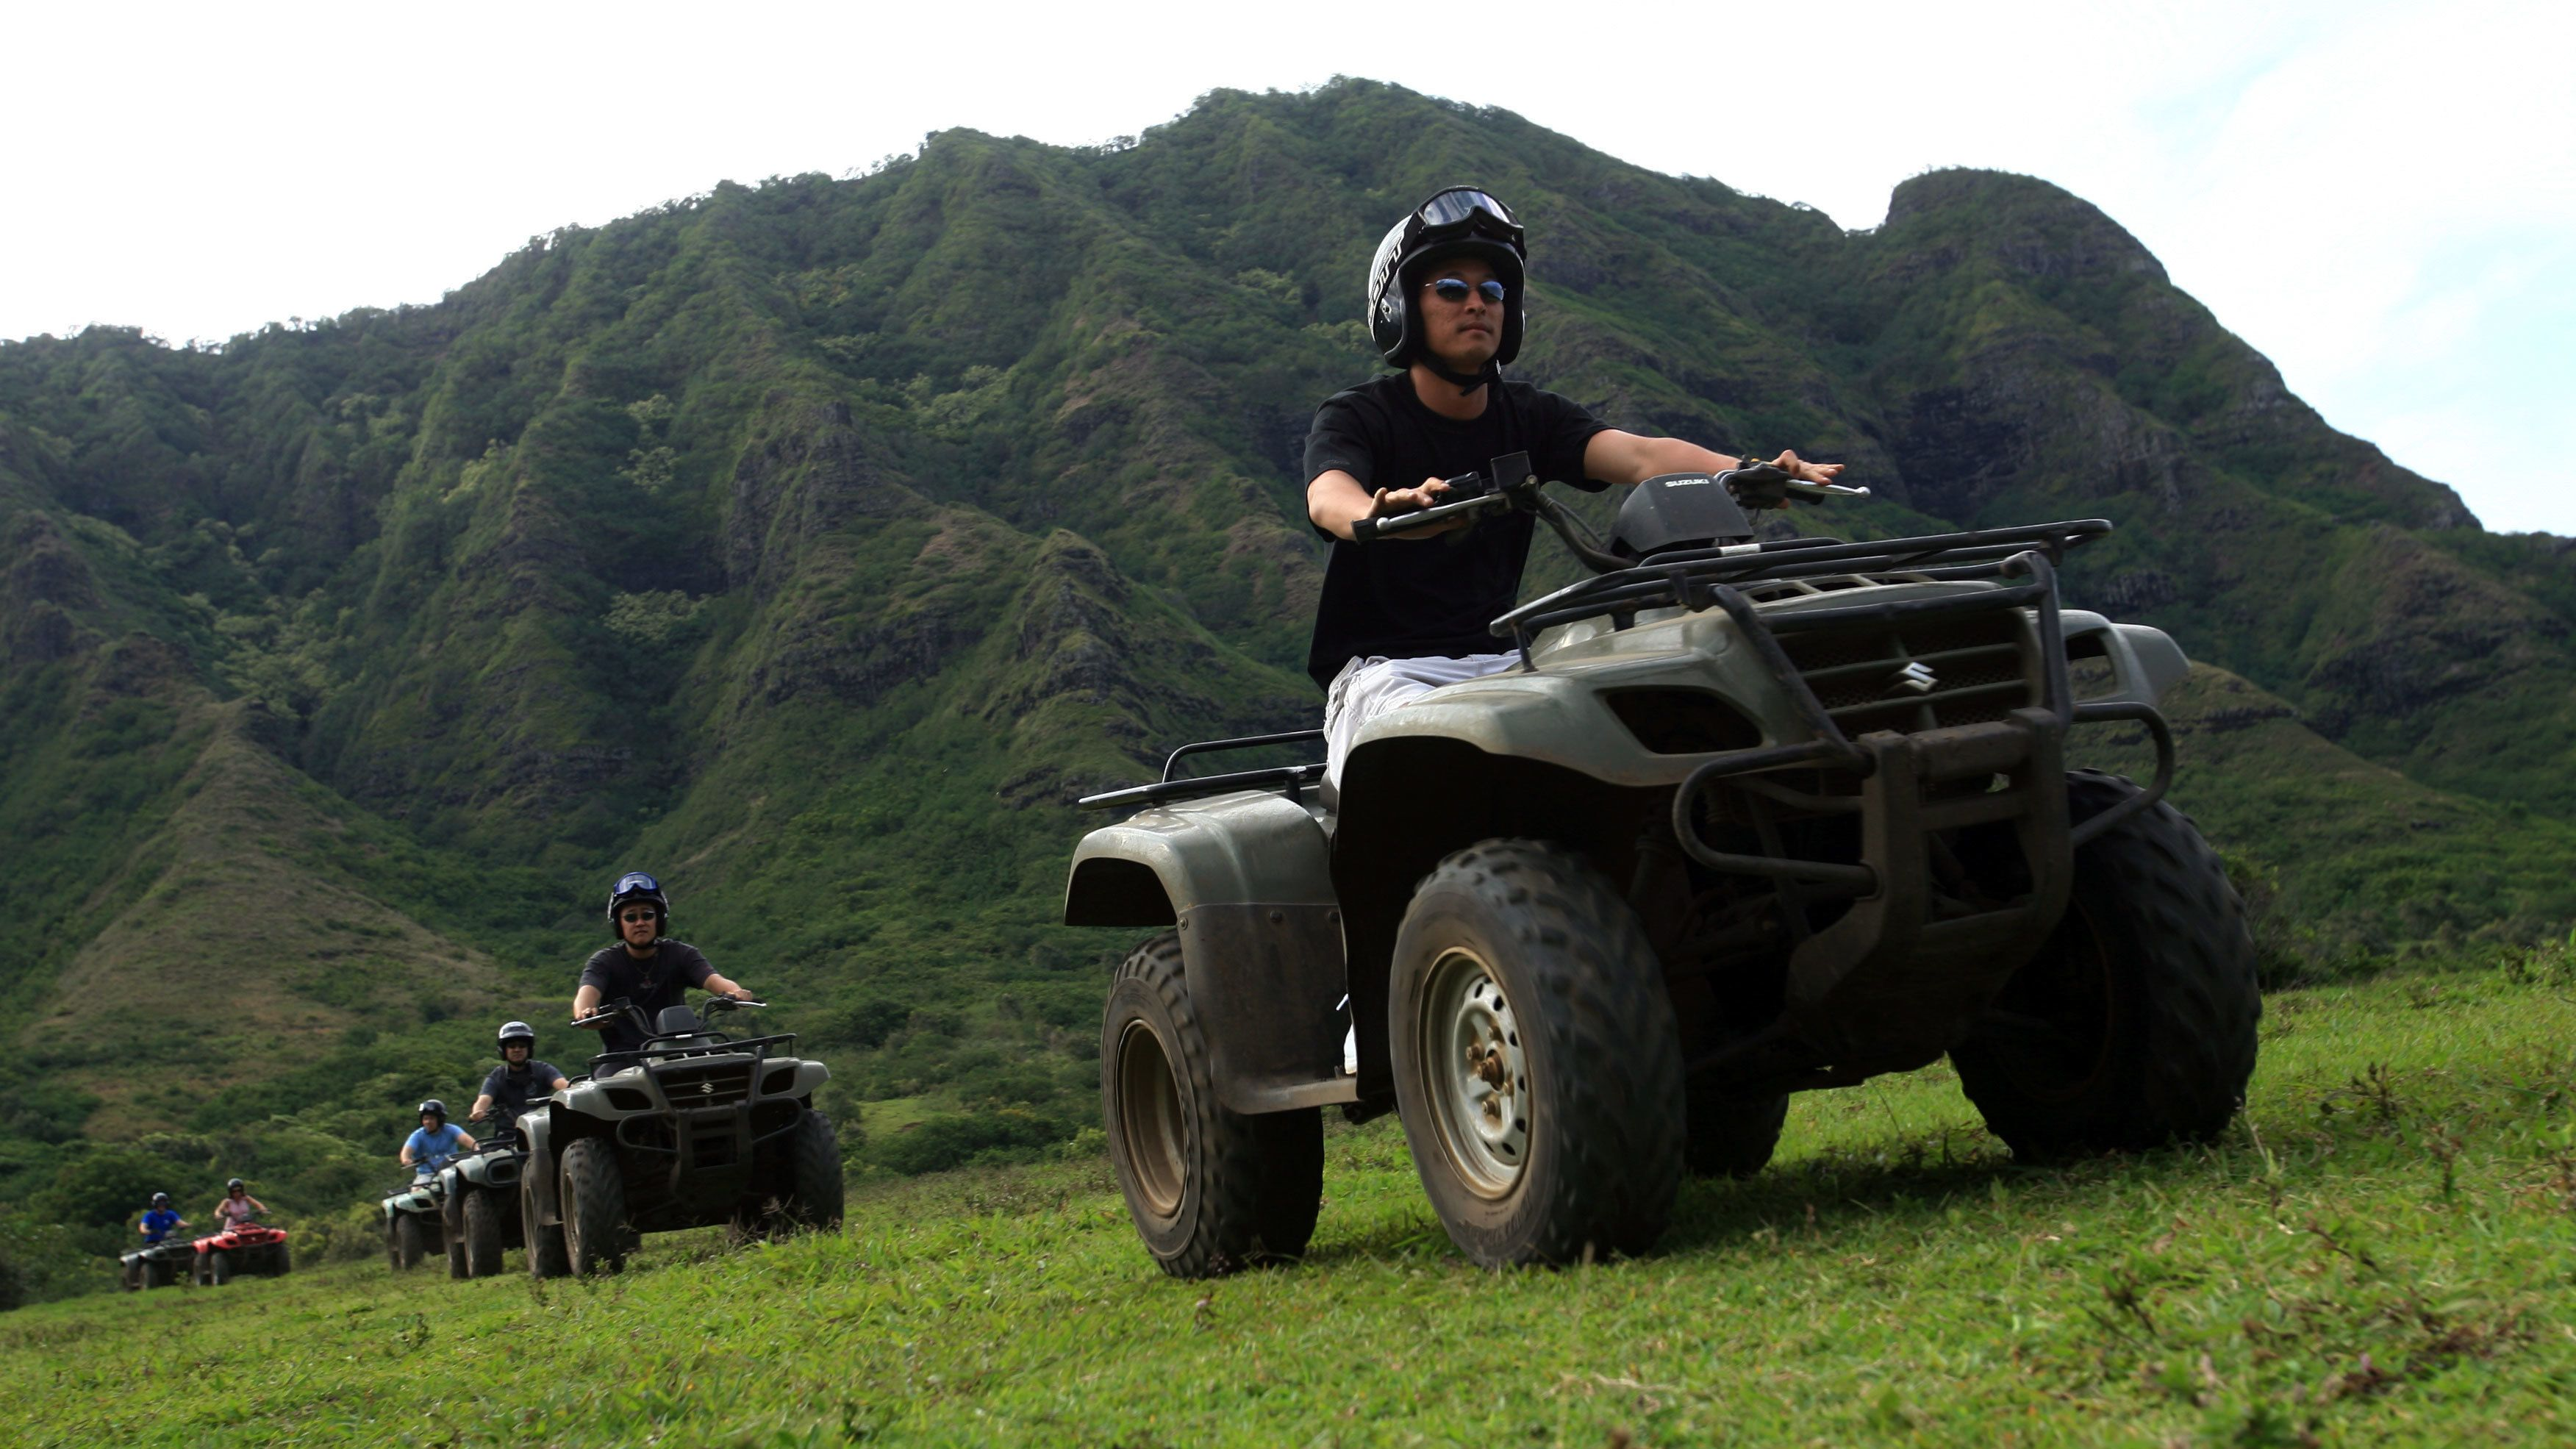 ATV riders in convoy